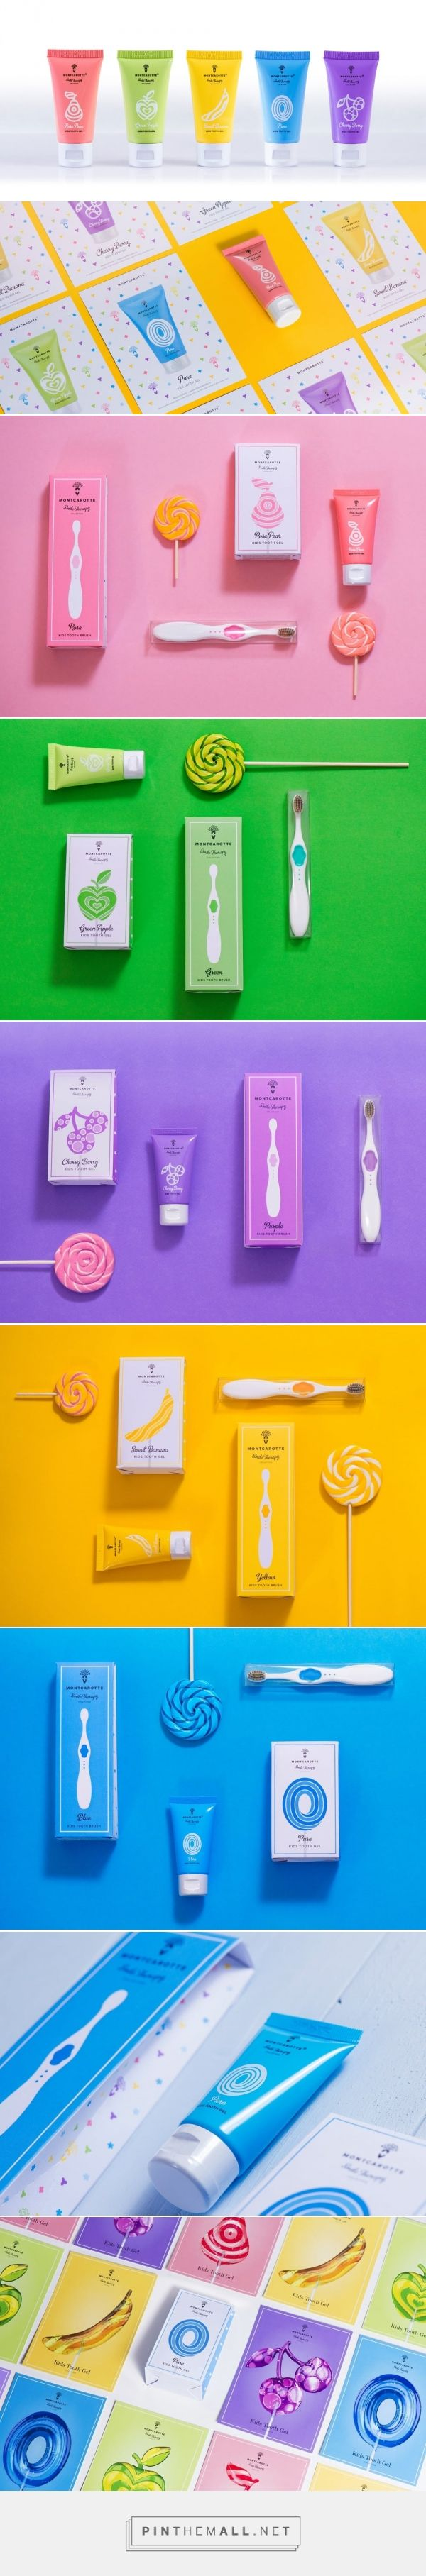 MontCarotte Kids Tooth Gel Collection by MontCarotte Creative Buro